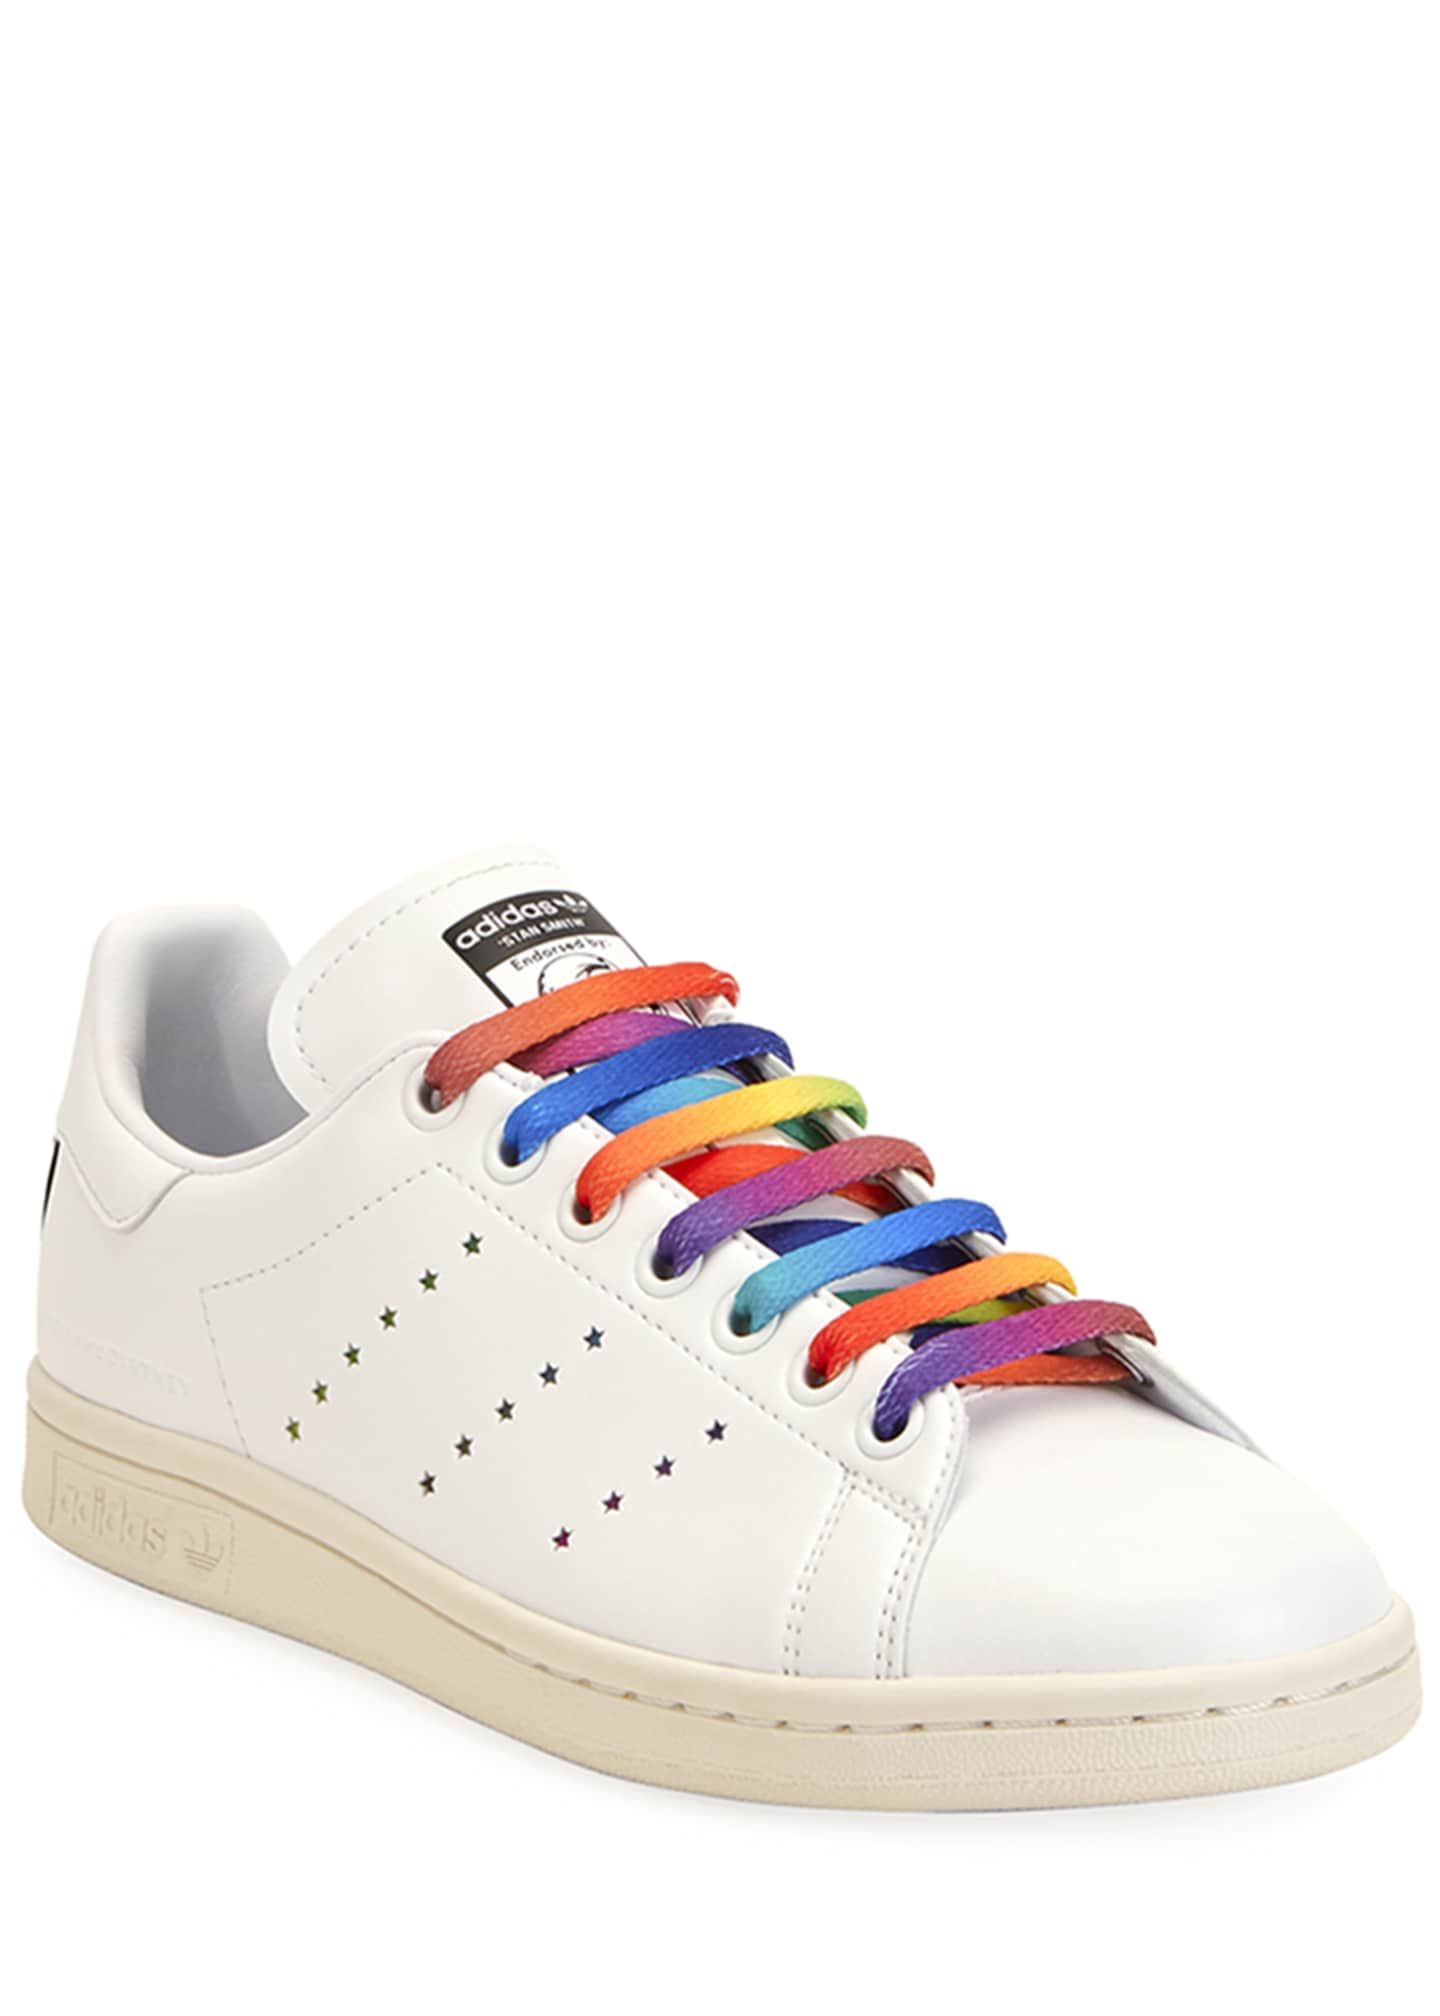 Image 1 of 3: Stan Smith Sneakers with Rainbow Laces